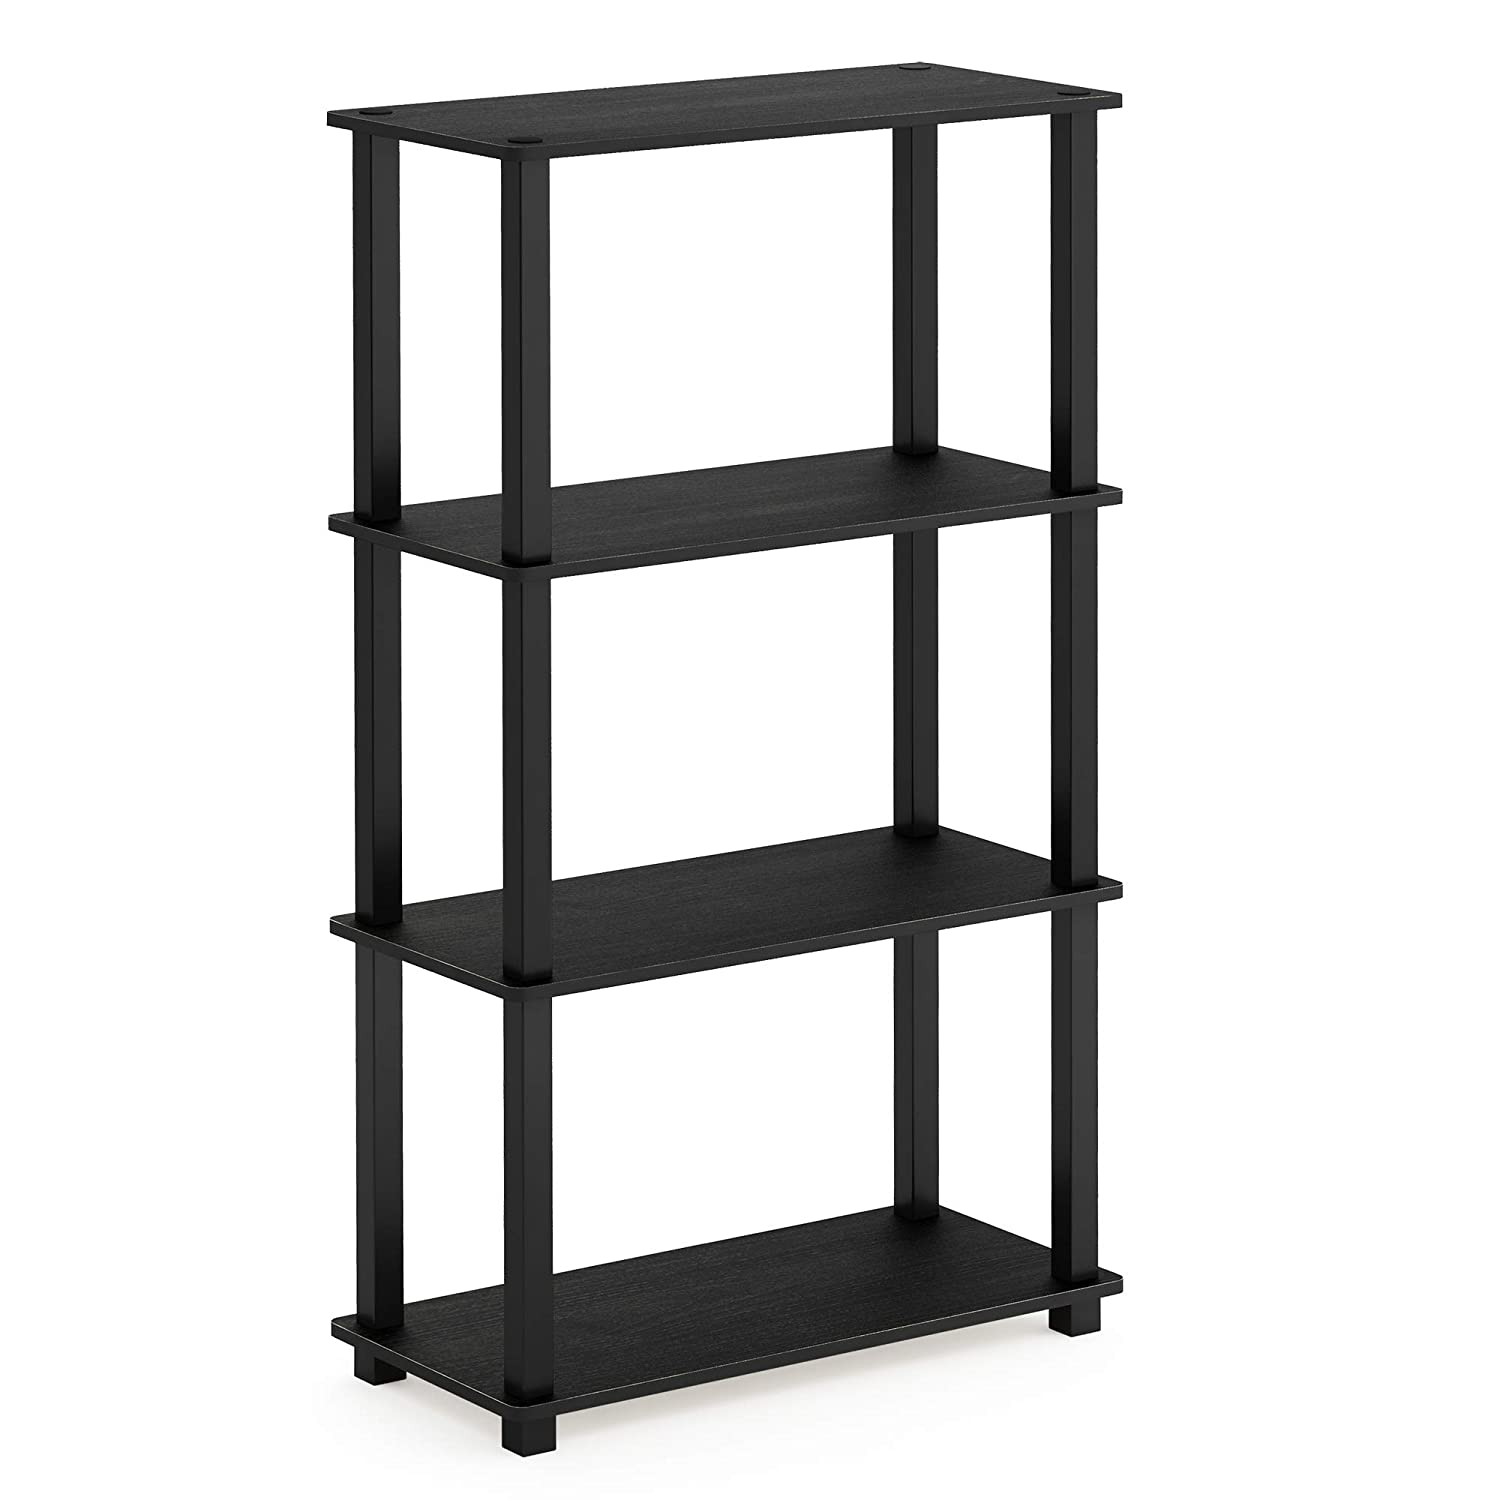 Furinno 18028AM/BK Turn-S-Tube 4-Tier Multipurpose Shelf Display Rack, Square, Americano/Black